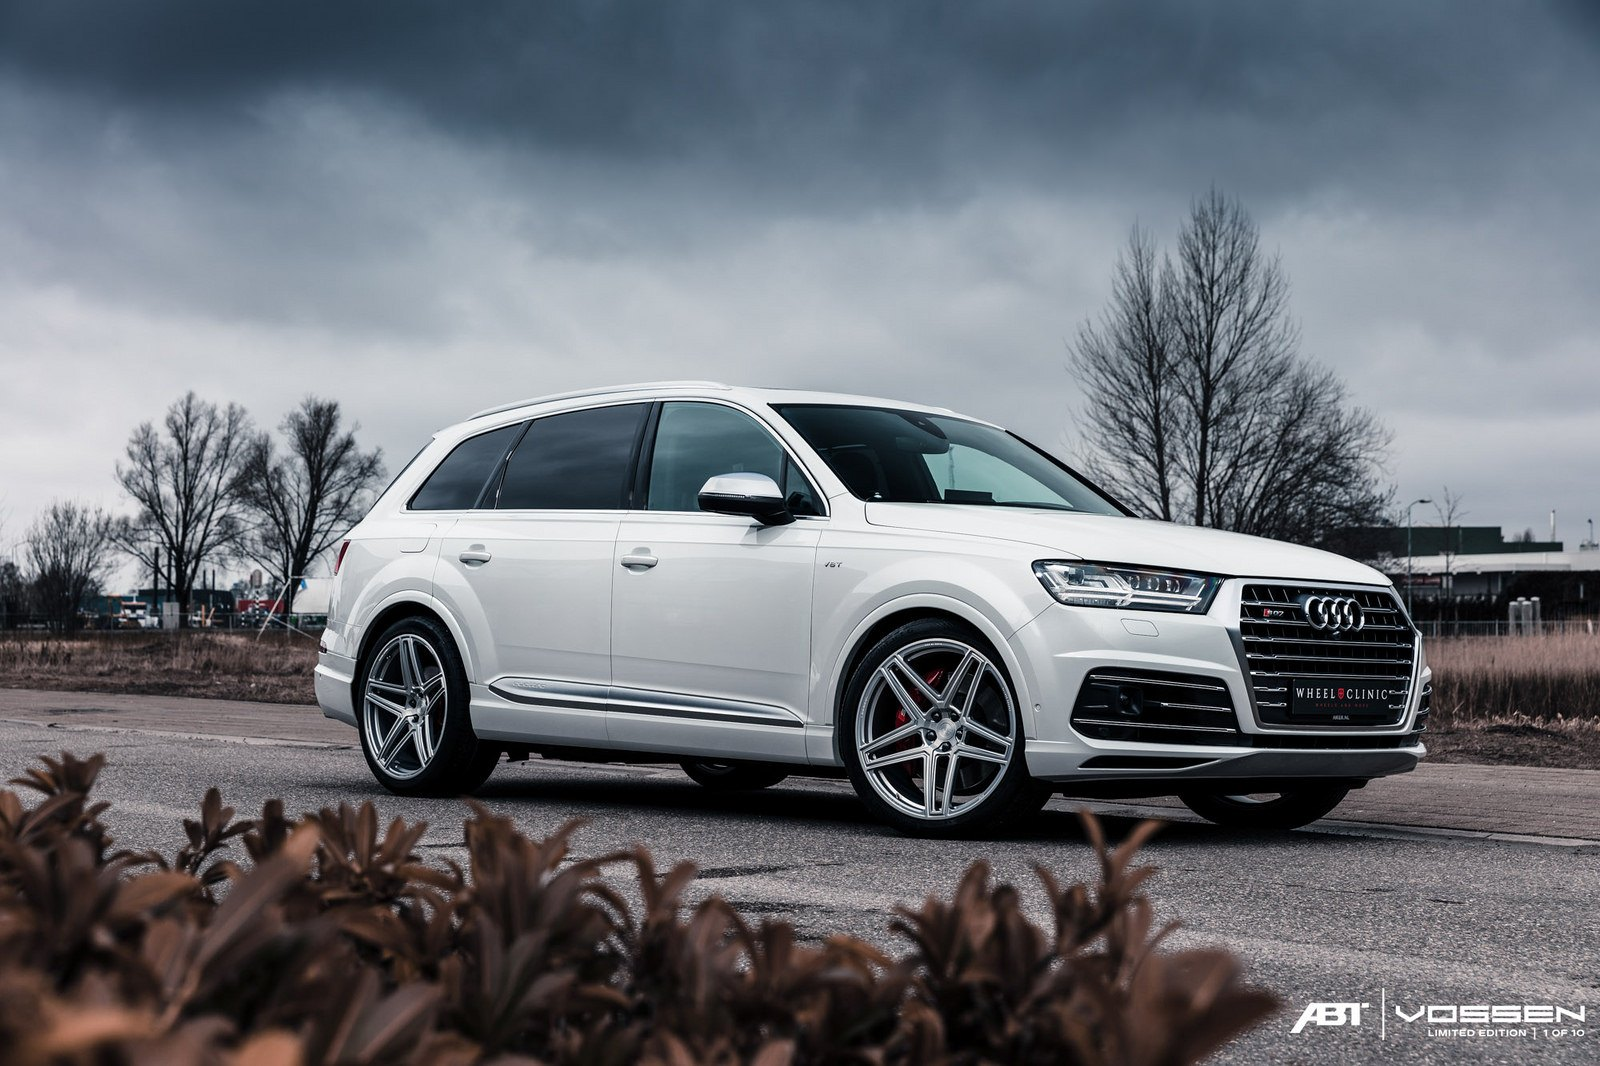 Audi Q7 Goes In Style Wearing Vossen Rims Carid Com Gallery